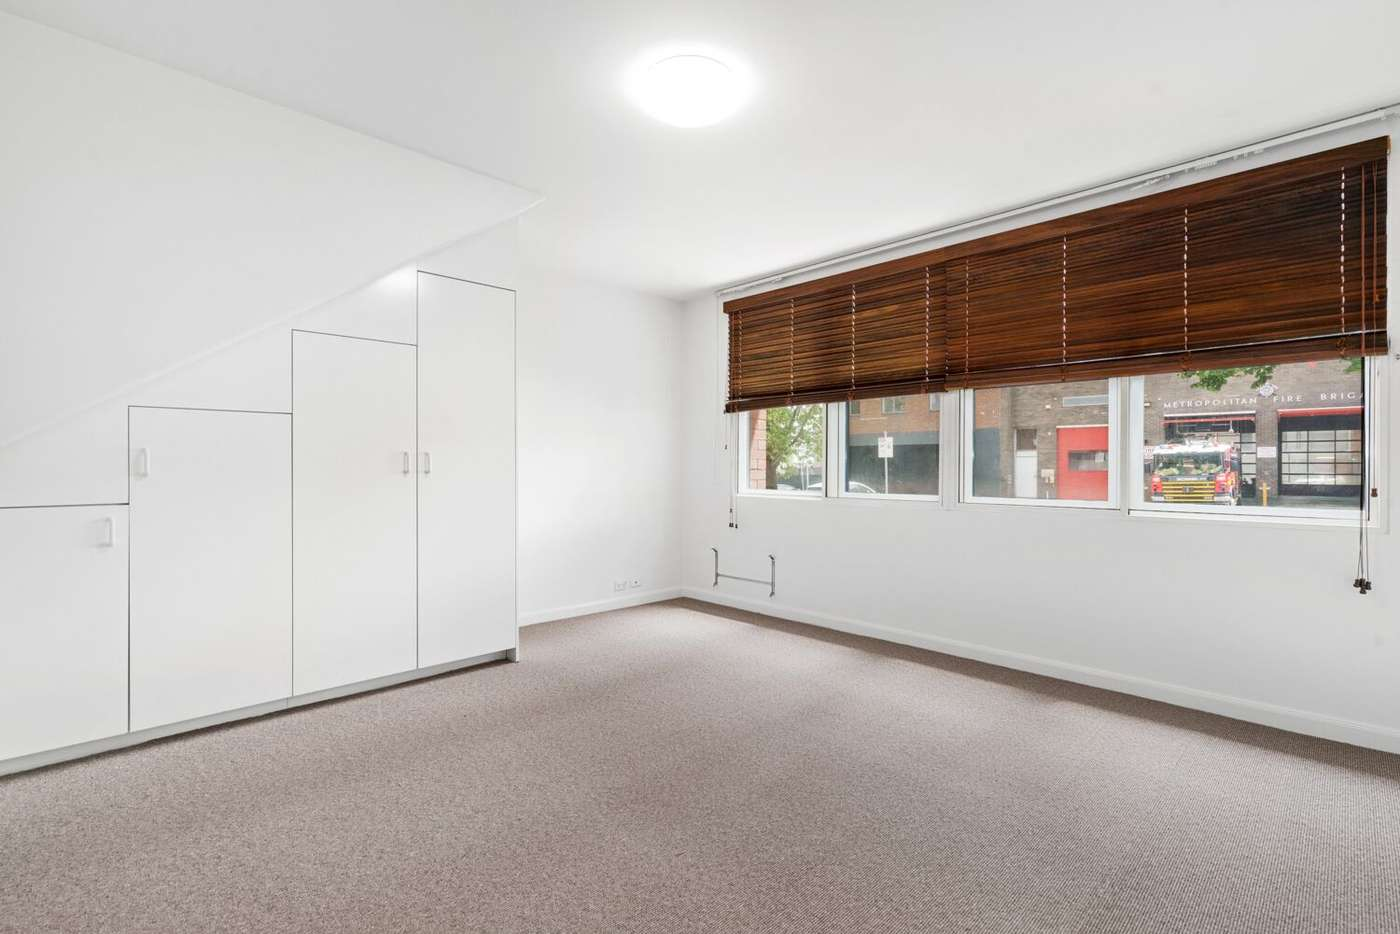 Sixth view of Homely apartment listing, 3/55 Batman Street, West Melbourne VIC 3003